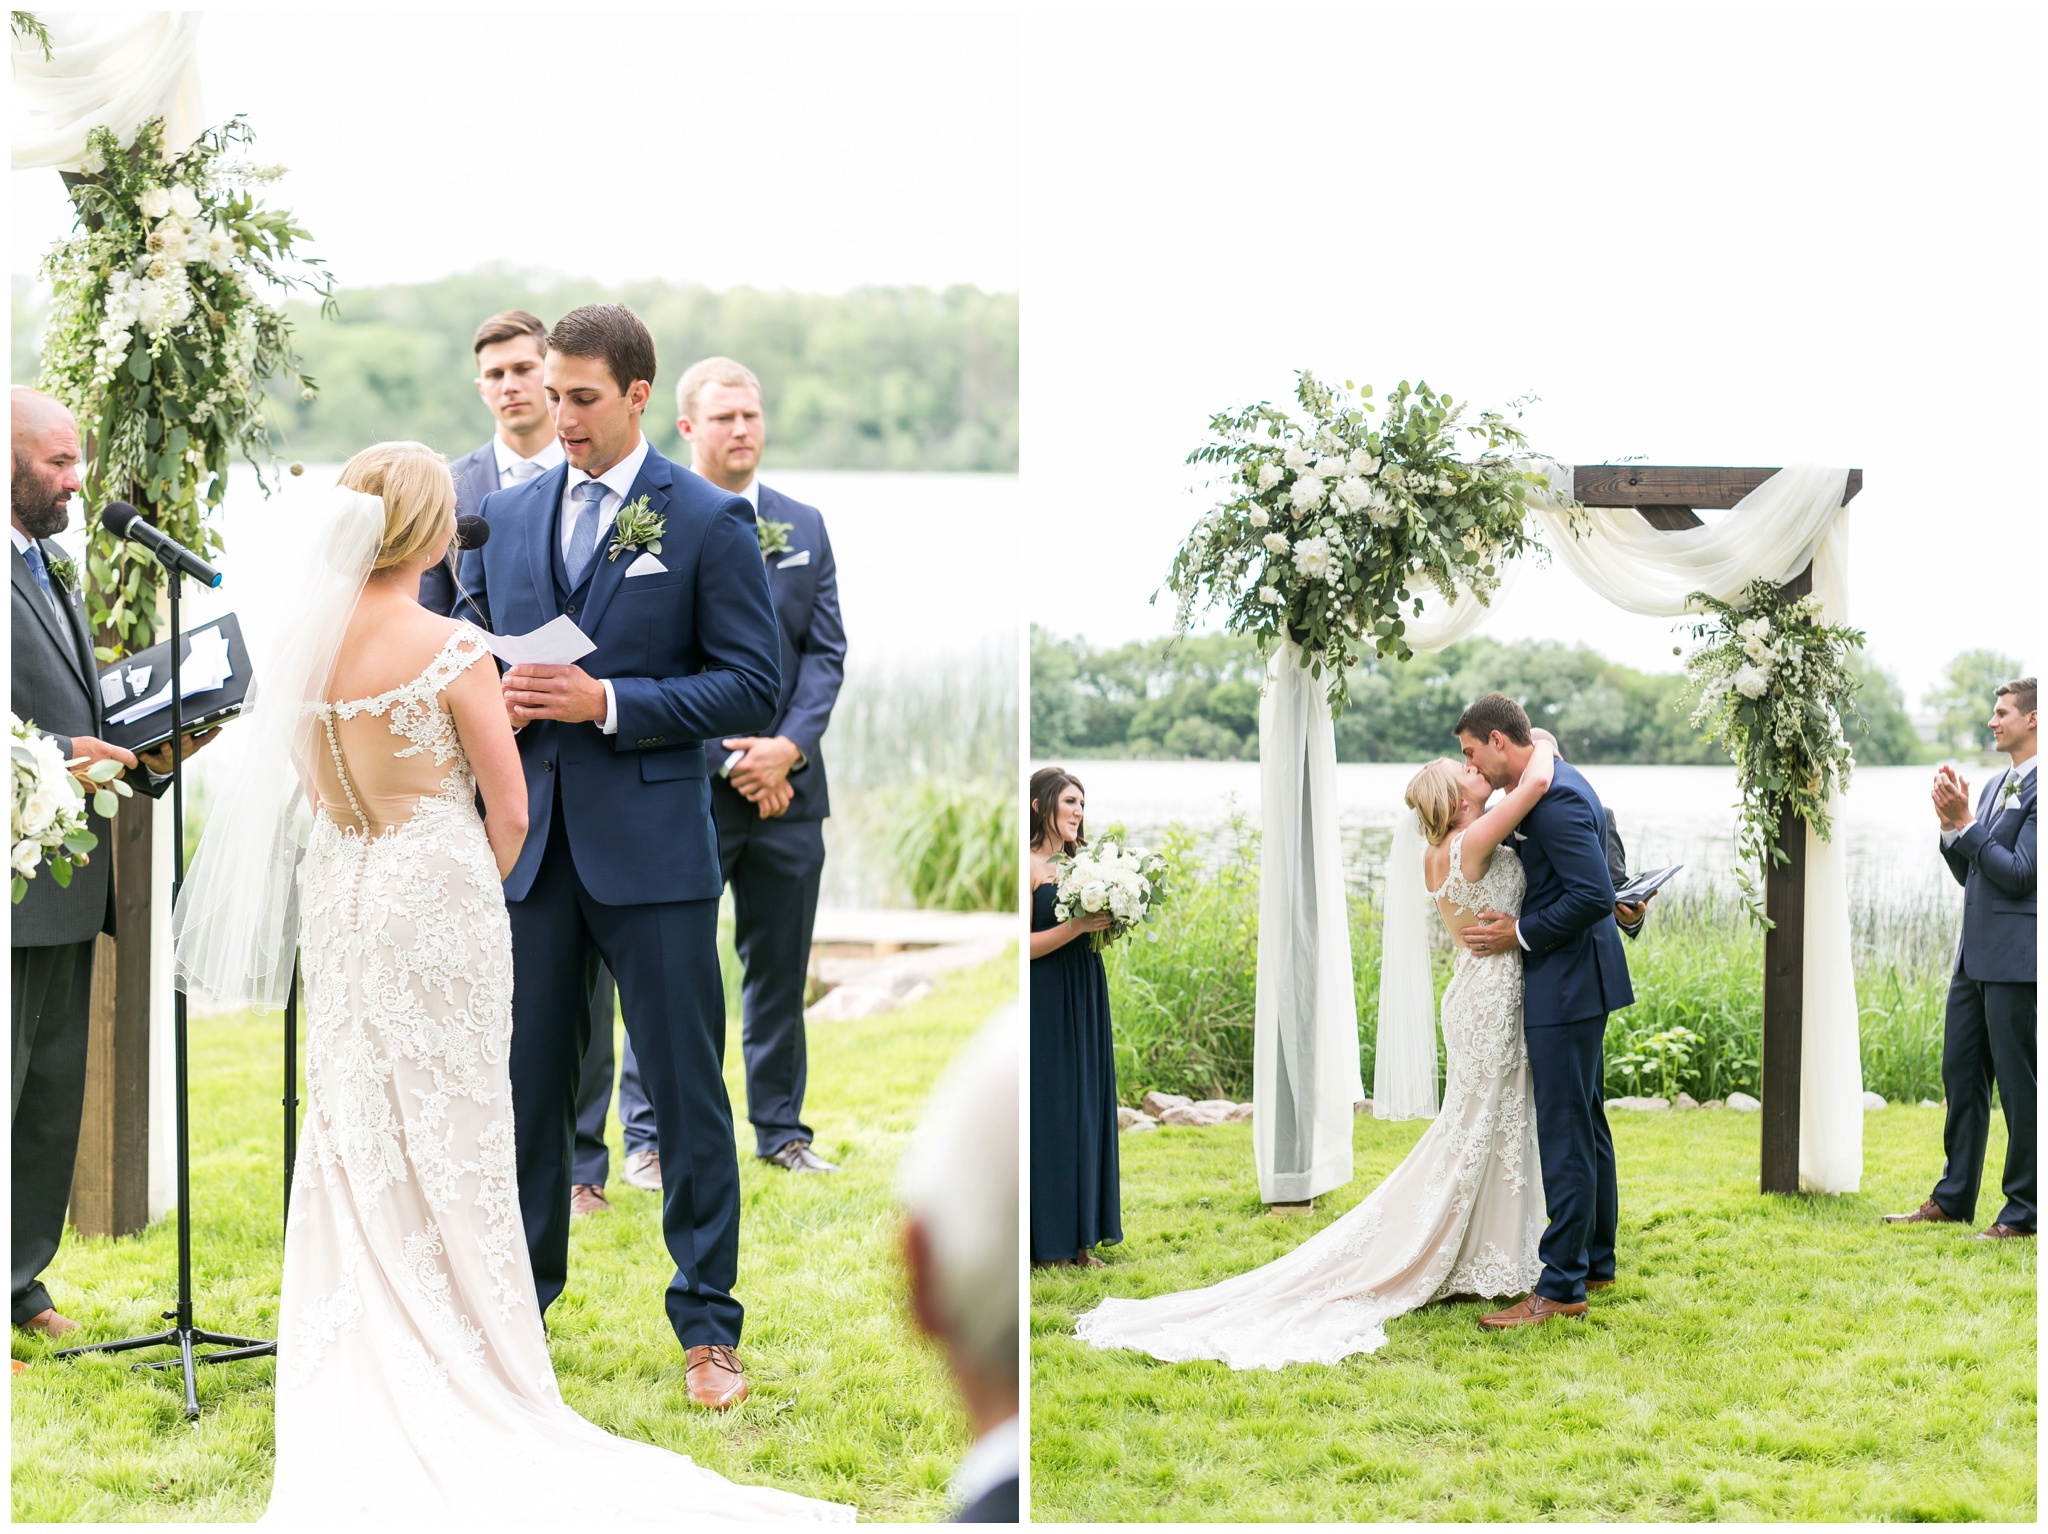 private_estate_wedding_stoughton_wisconsin_wedding_caynay_photo_3867.jpg